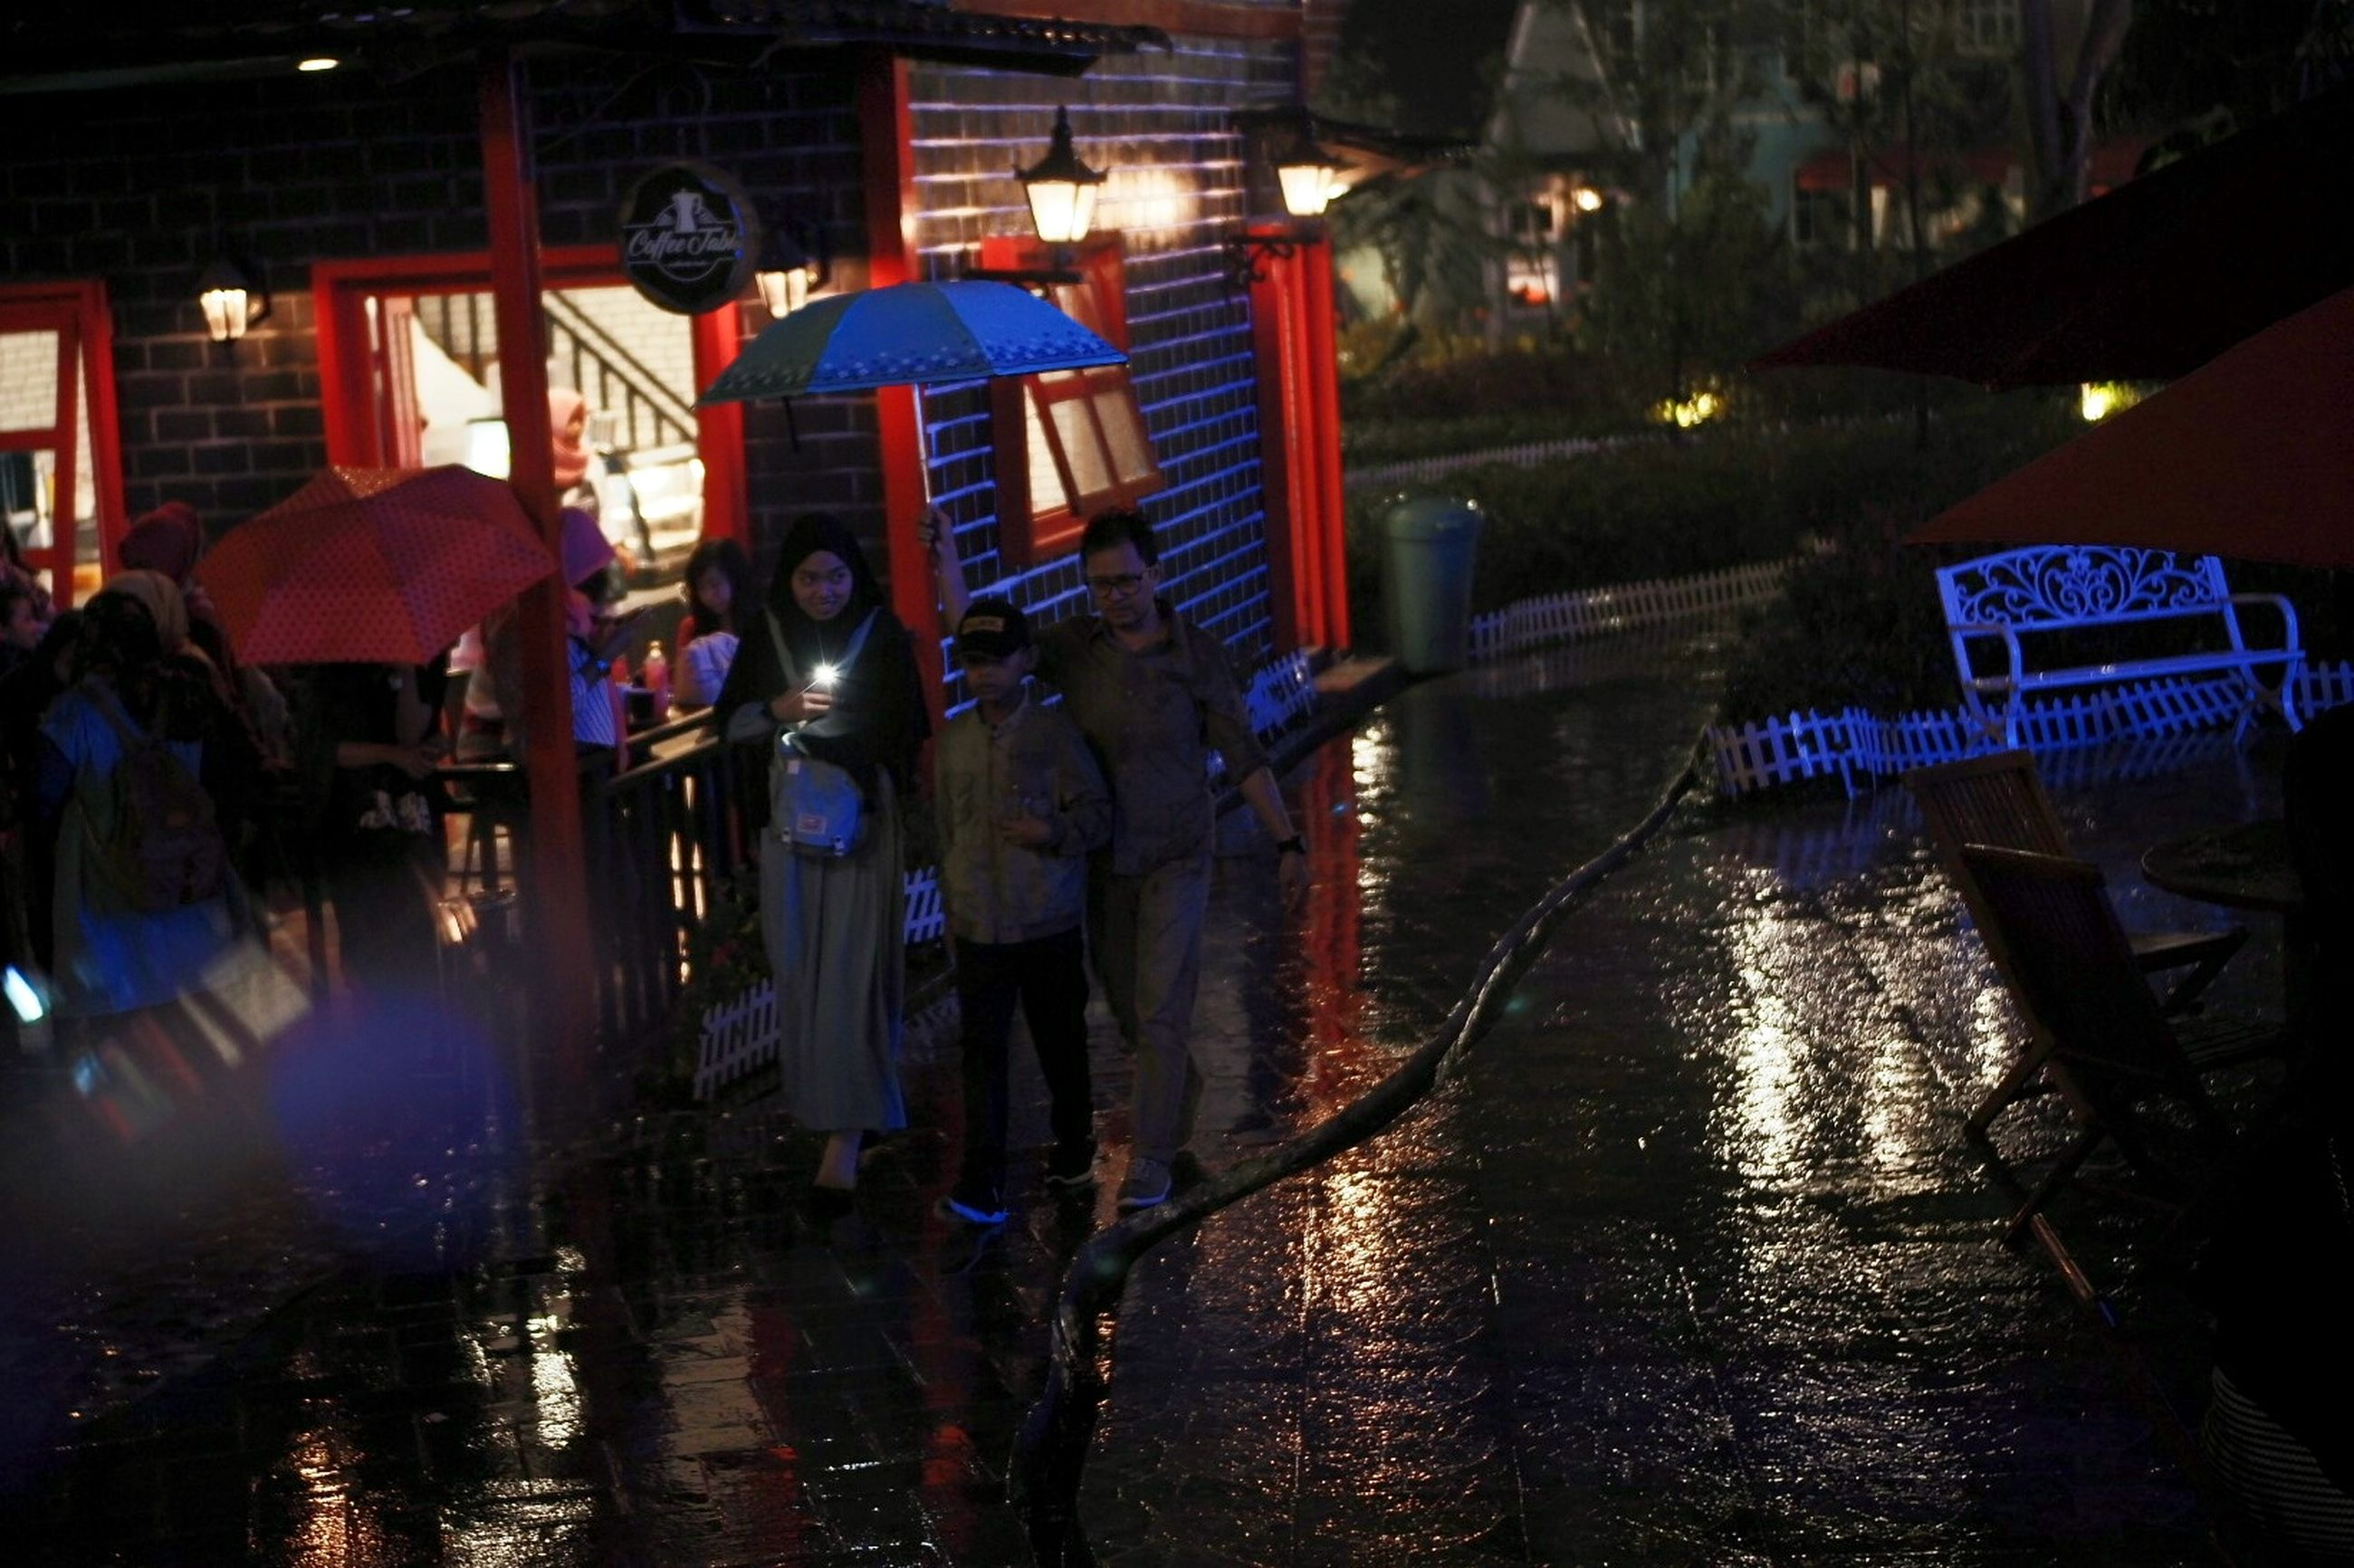 water, night, group of people, city, architecture, illuminated, wet, real people, men, protection, umbrella, built structure, transportation, people, rain, street, standing, building exterior, outdoors, rainy season, canal